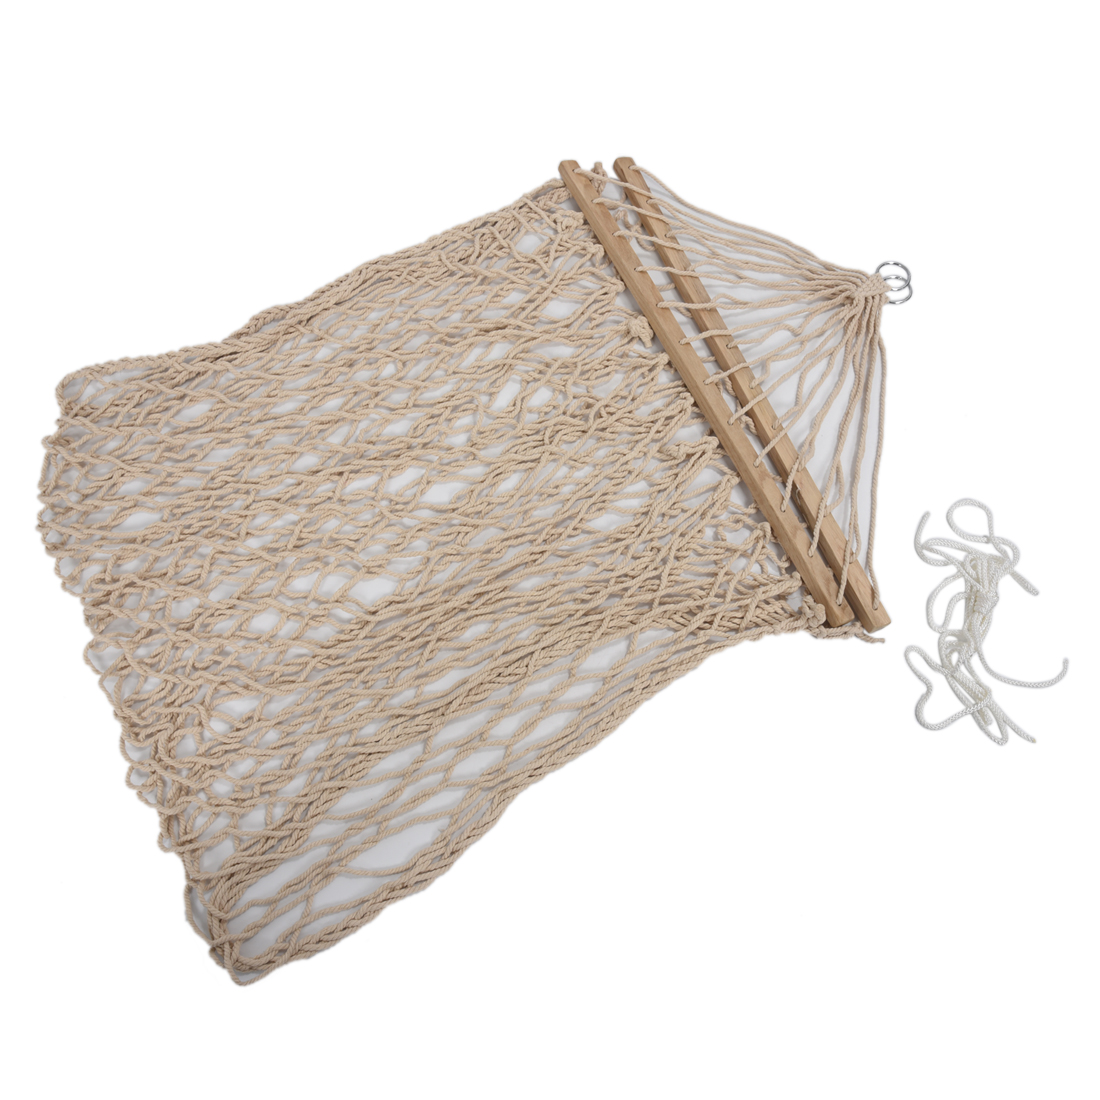 Image 3 - Hot Sale White Cotton Rope Swing Hammock Hanging on the Porch or on a Beach-in Hammocks from Furniture